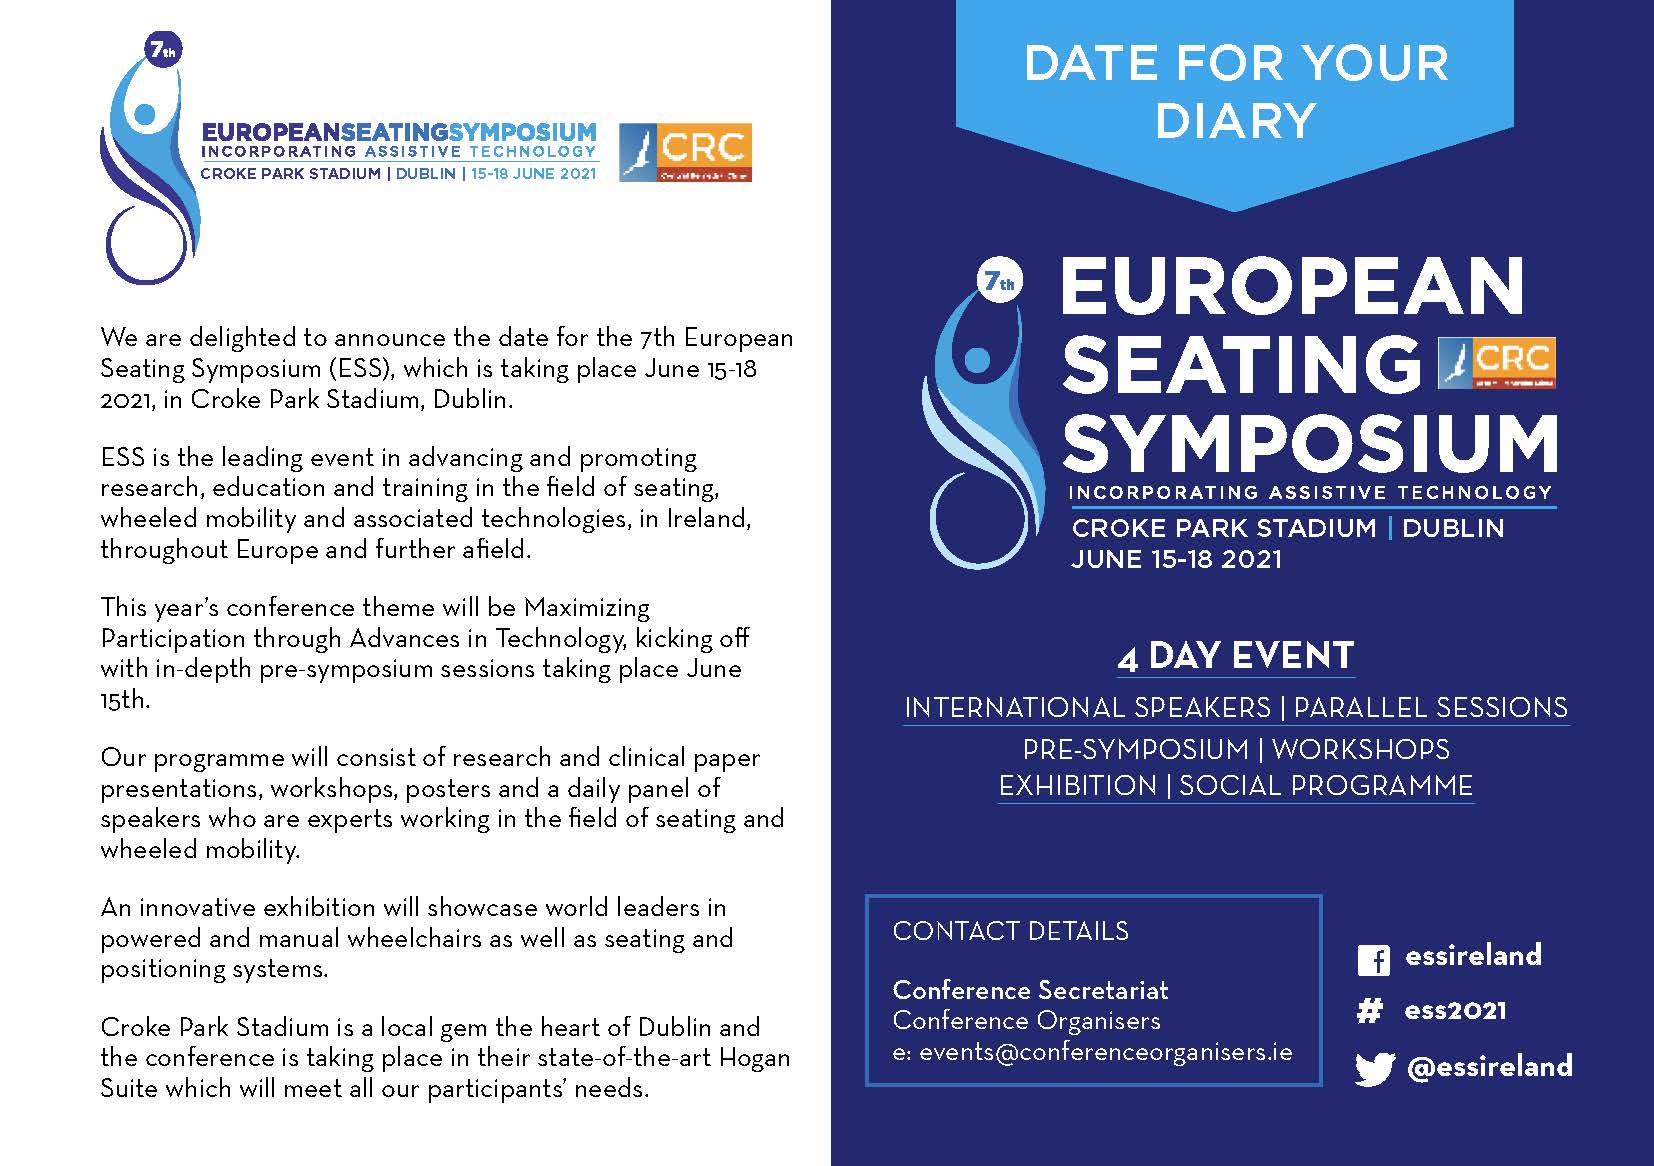 AOTI The 7th European Seating Symposium returns to Dublin - rescheduled to 15 - 18 June 2021 image